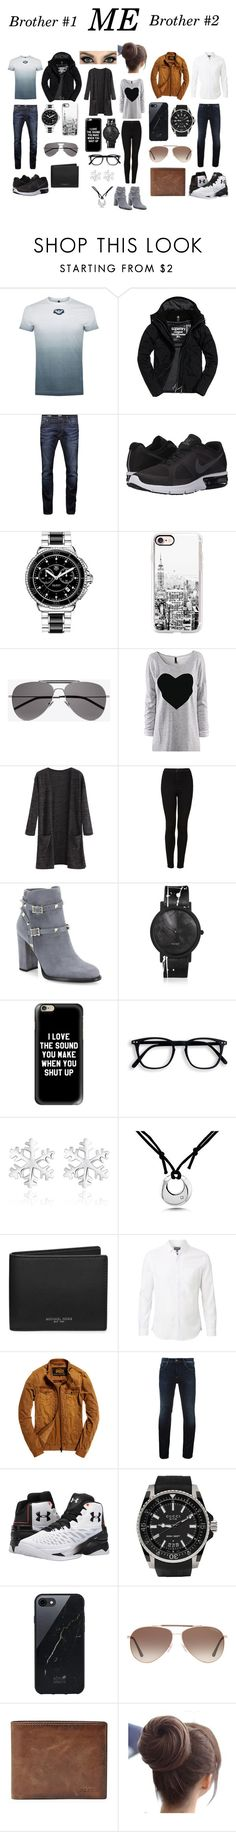 """""""My Brother Forced Me To Make This Set😥😥"""" by chanchalbijarnia ❤ liked on Polyvore featuring Armani Jeans, Superdry, Jack & Jones, NIKE, TAG Heuer, Casetify, Yves Saint Laurent, Topshop, Valentino and South Lane"""